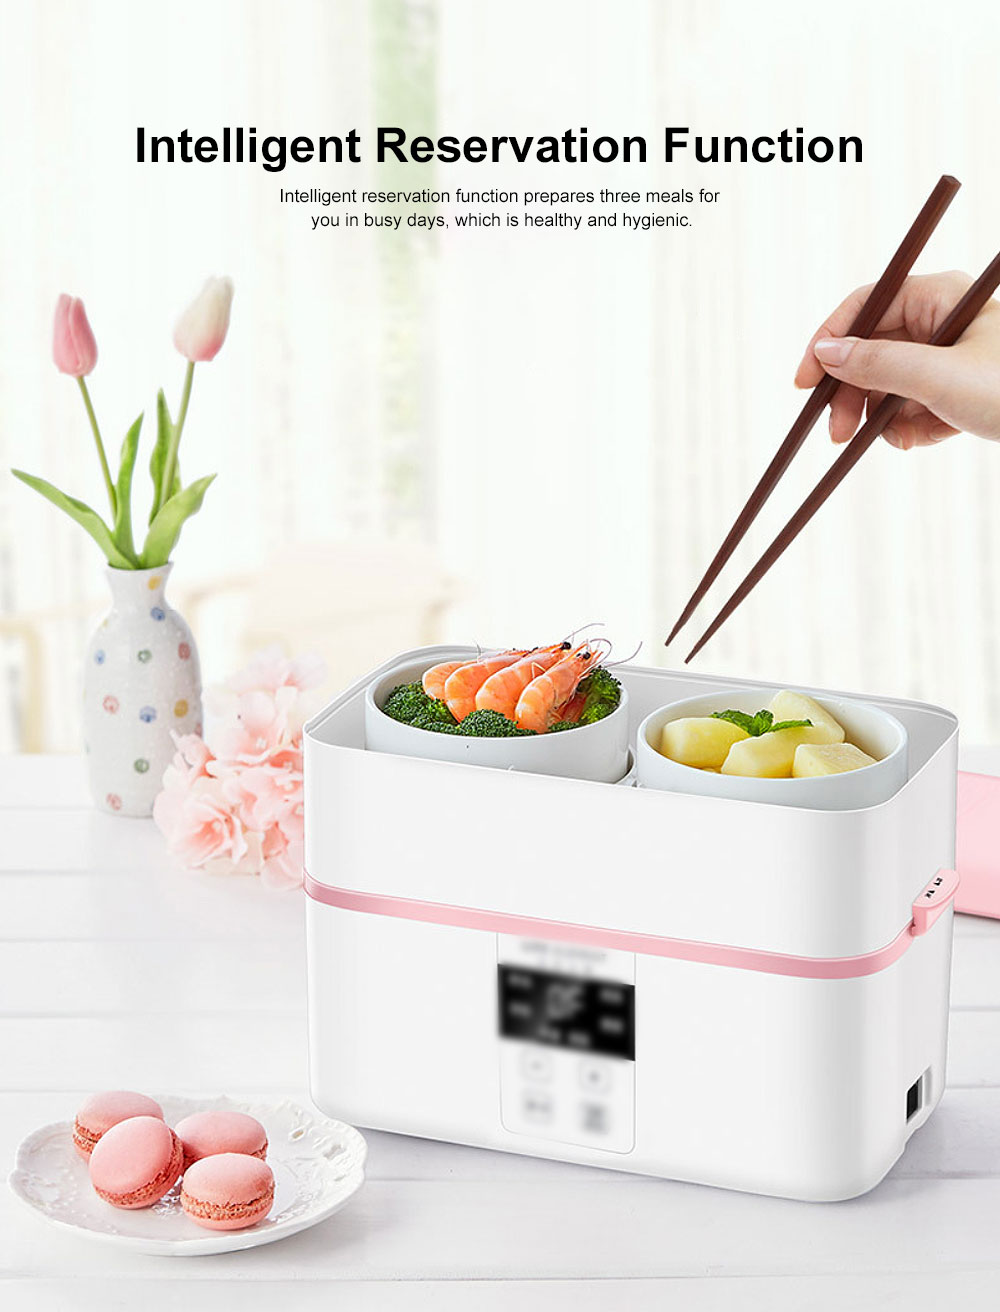 Electric Lunch Box Ceramic Intelligent Reservation Timing Lunch Box, Large Capacity Double-layer Heat Preservation Box 1